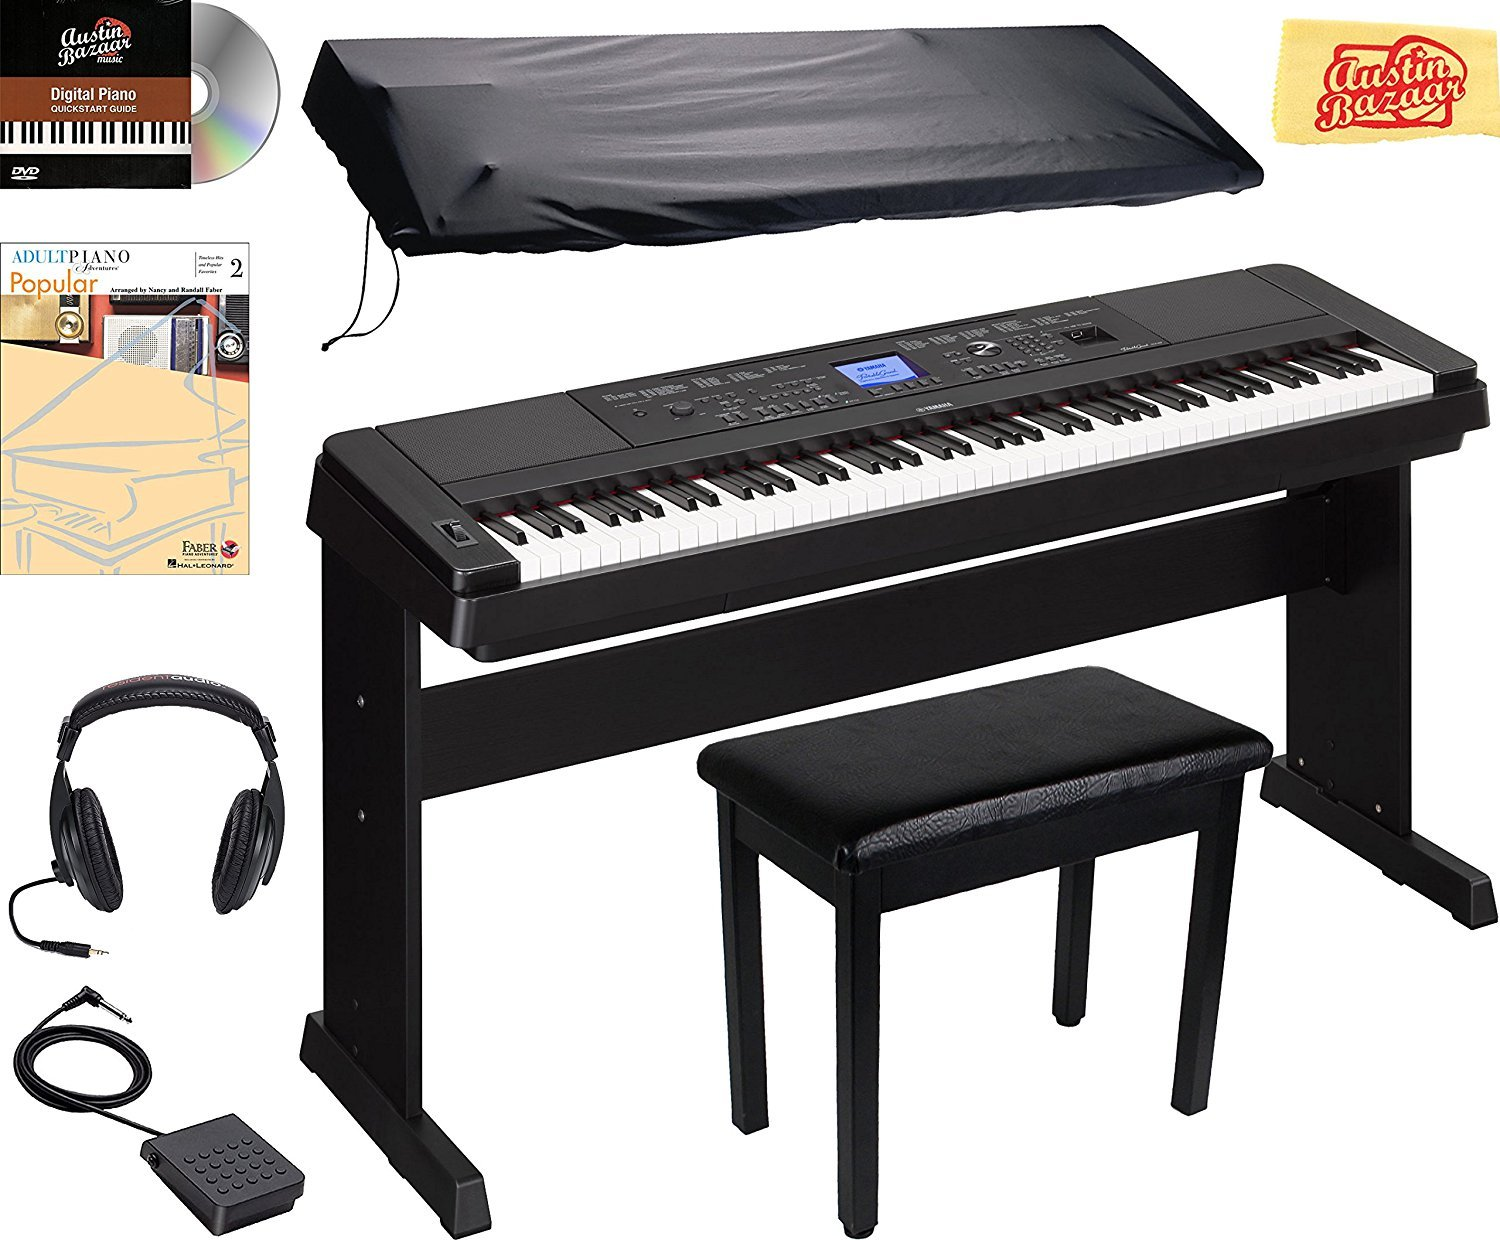 5 best 88 key keyboards for Yamaha piano keyboard models